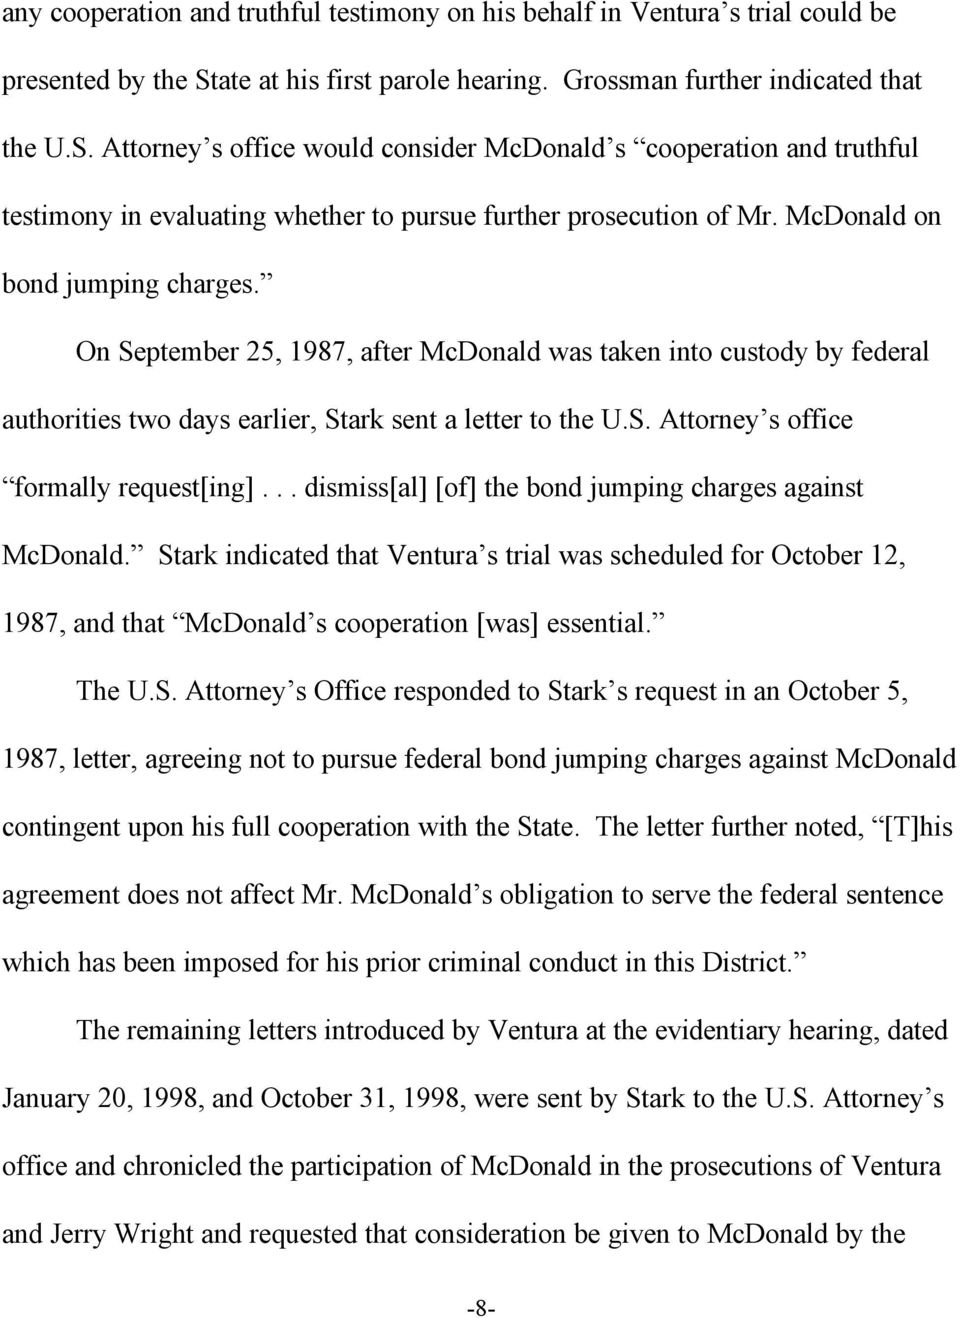 Attorney s office would consider McDonald s cooperation and truthful testimony in evaluating whether to pursue further prosecution of Mr. McDonald on bond jumping charges.